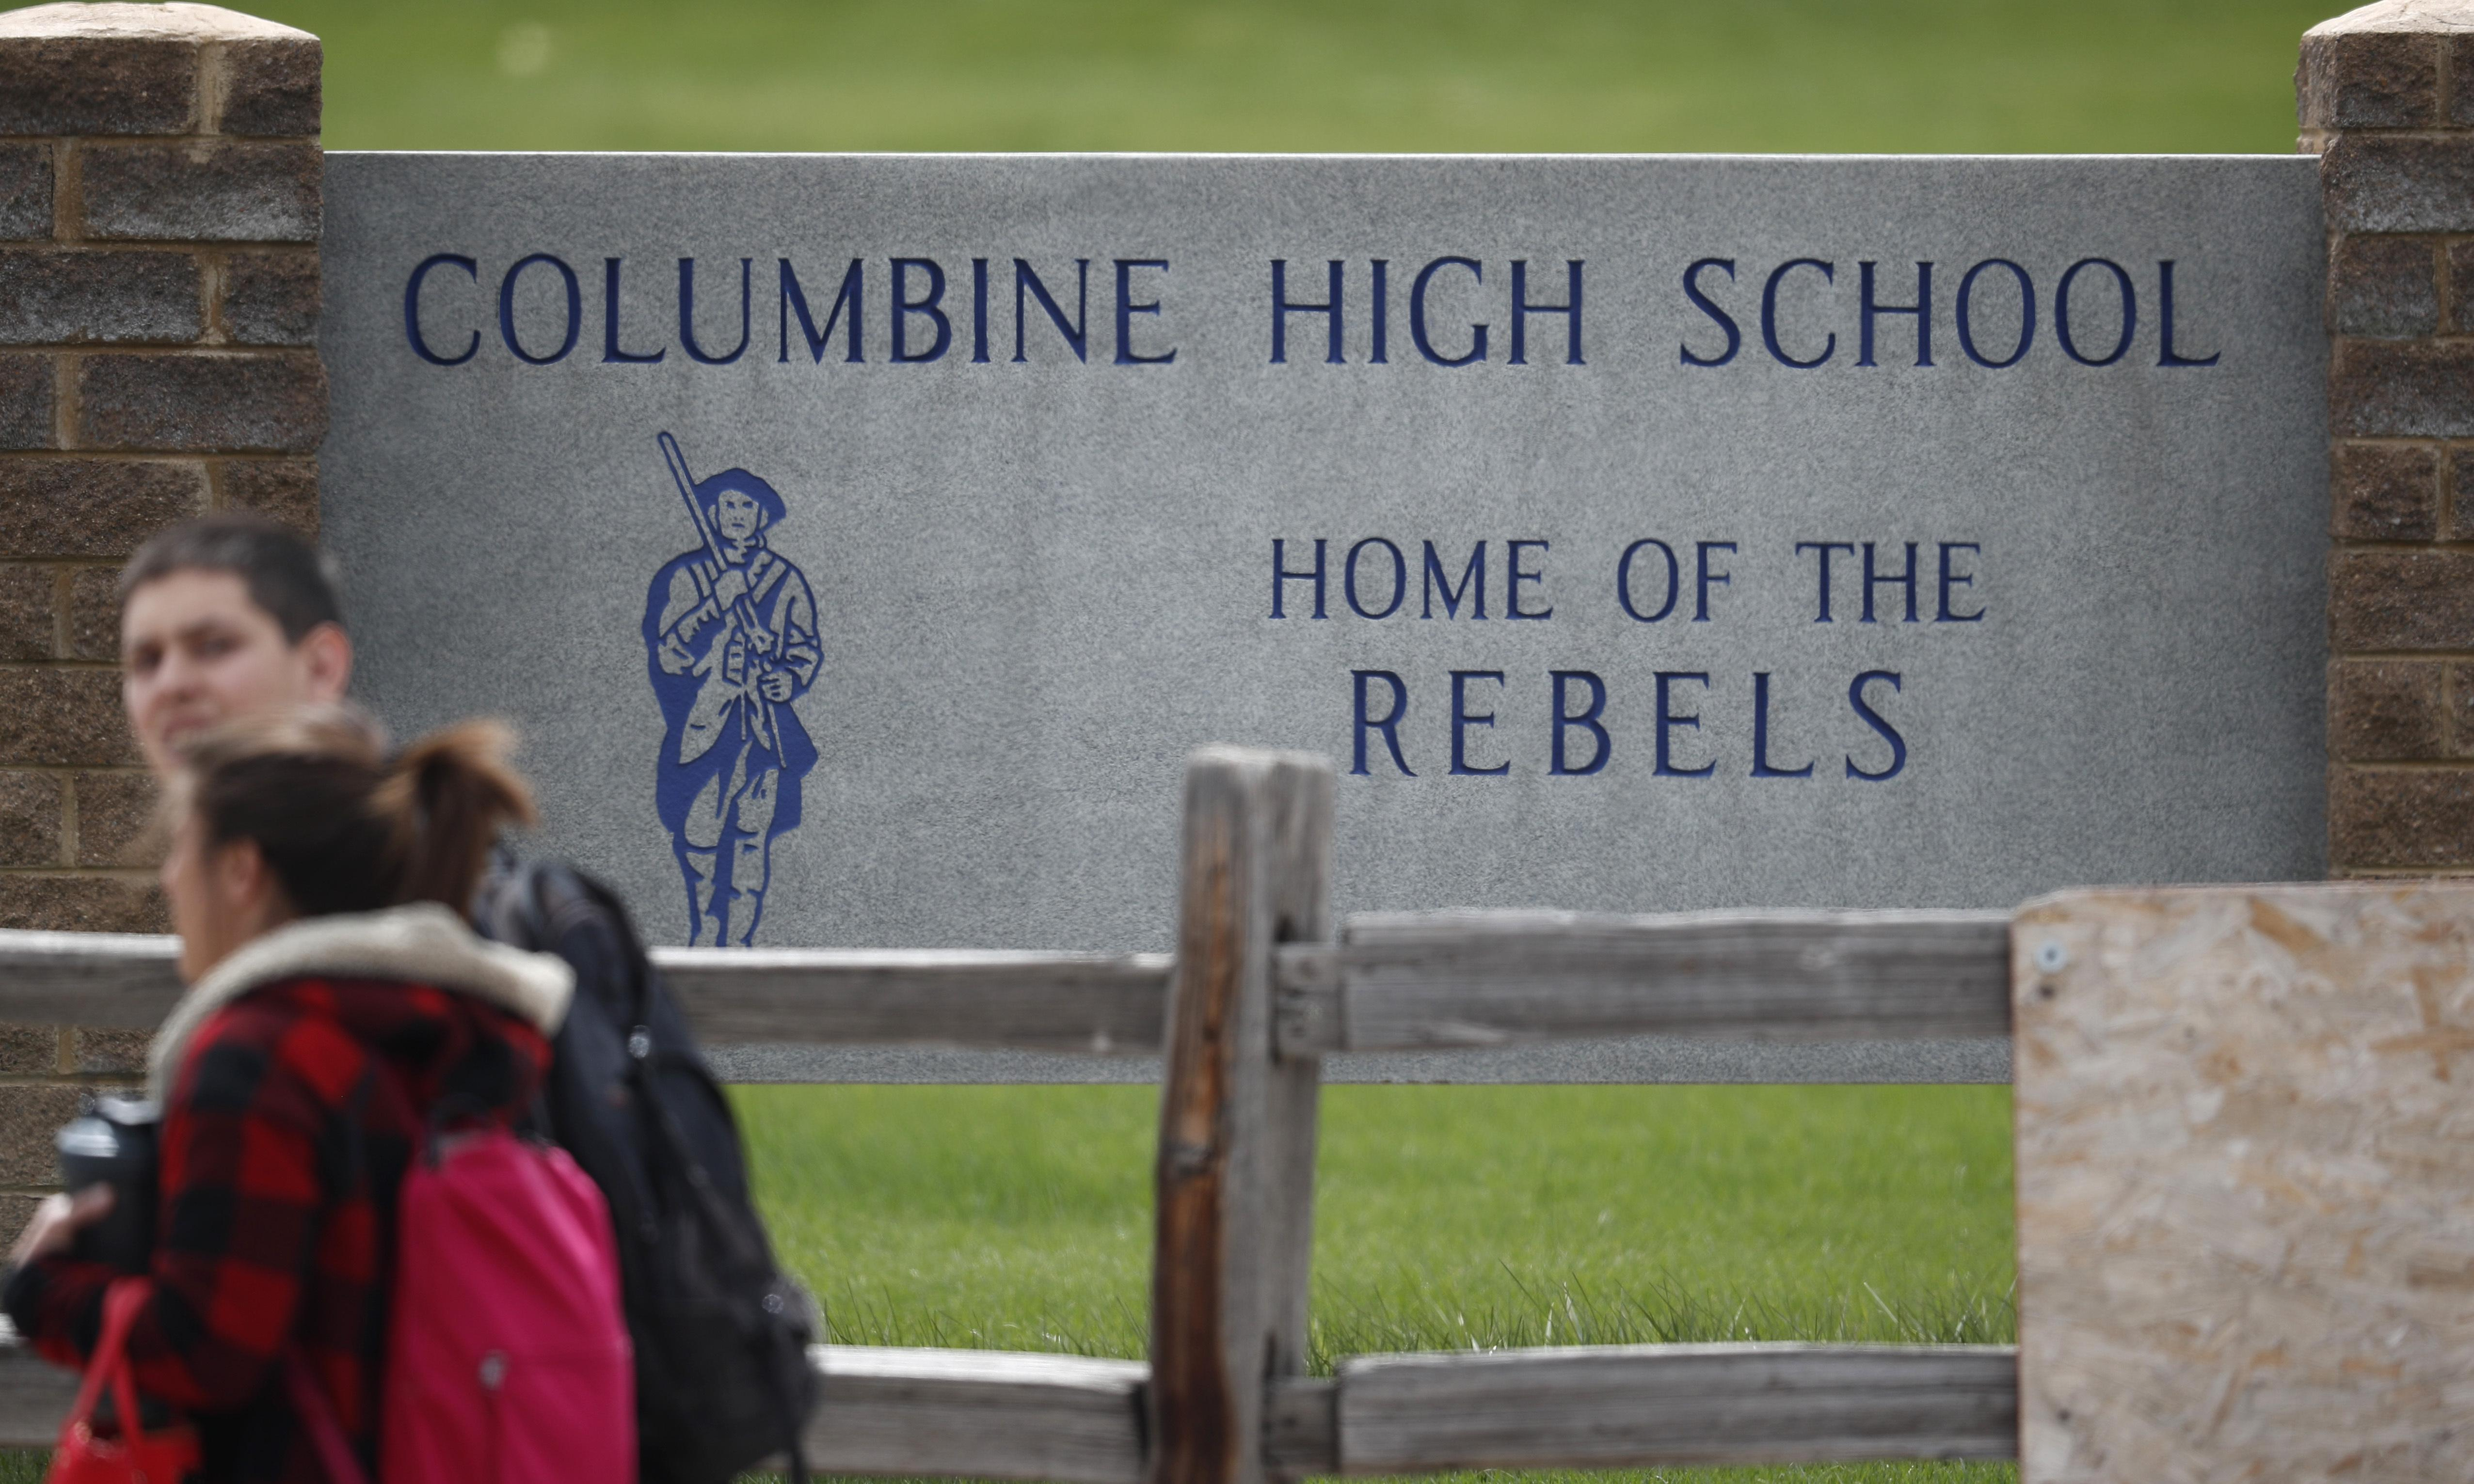 Denver schools closed as police search for woman accused of threats against Columbine